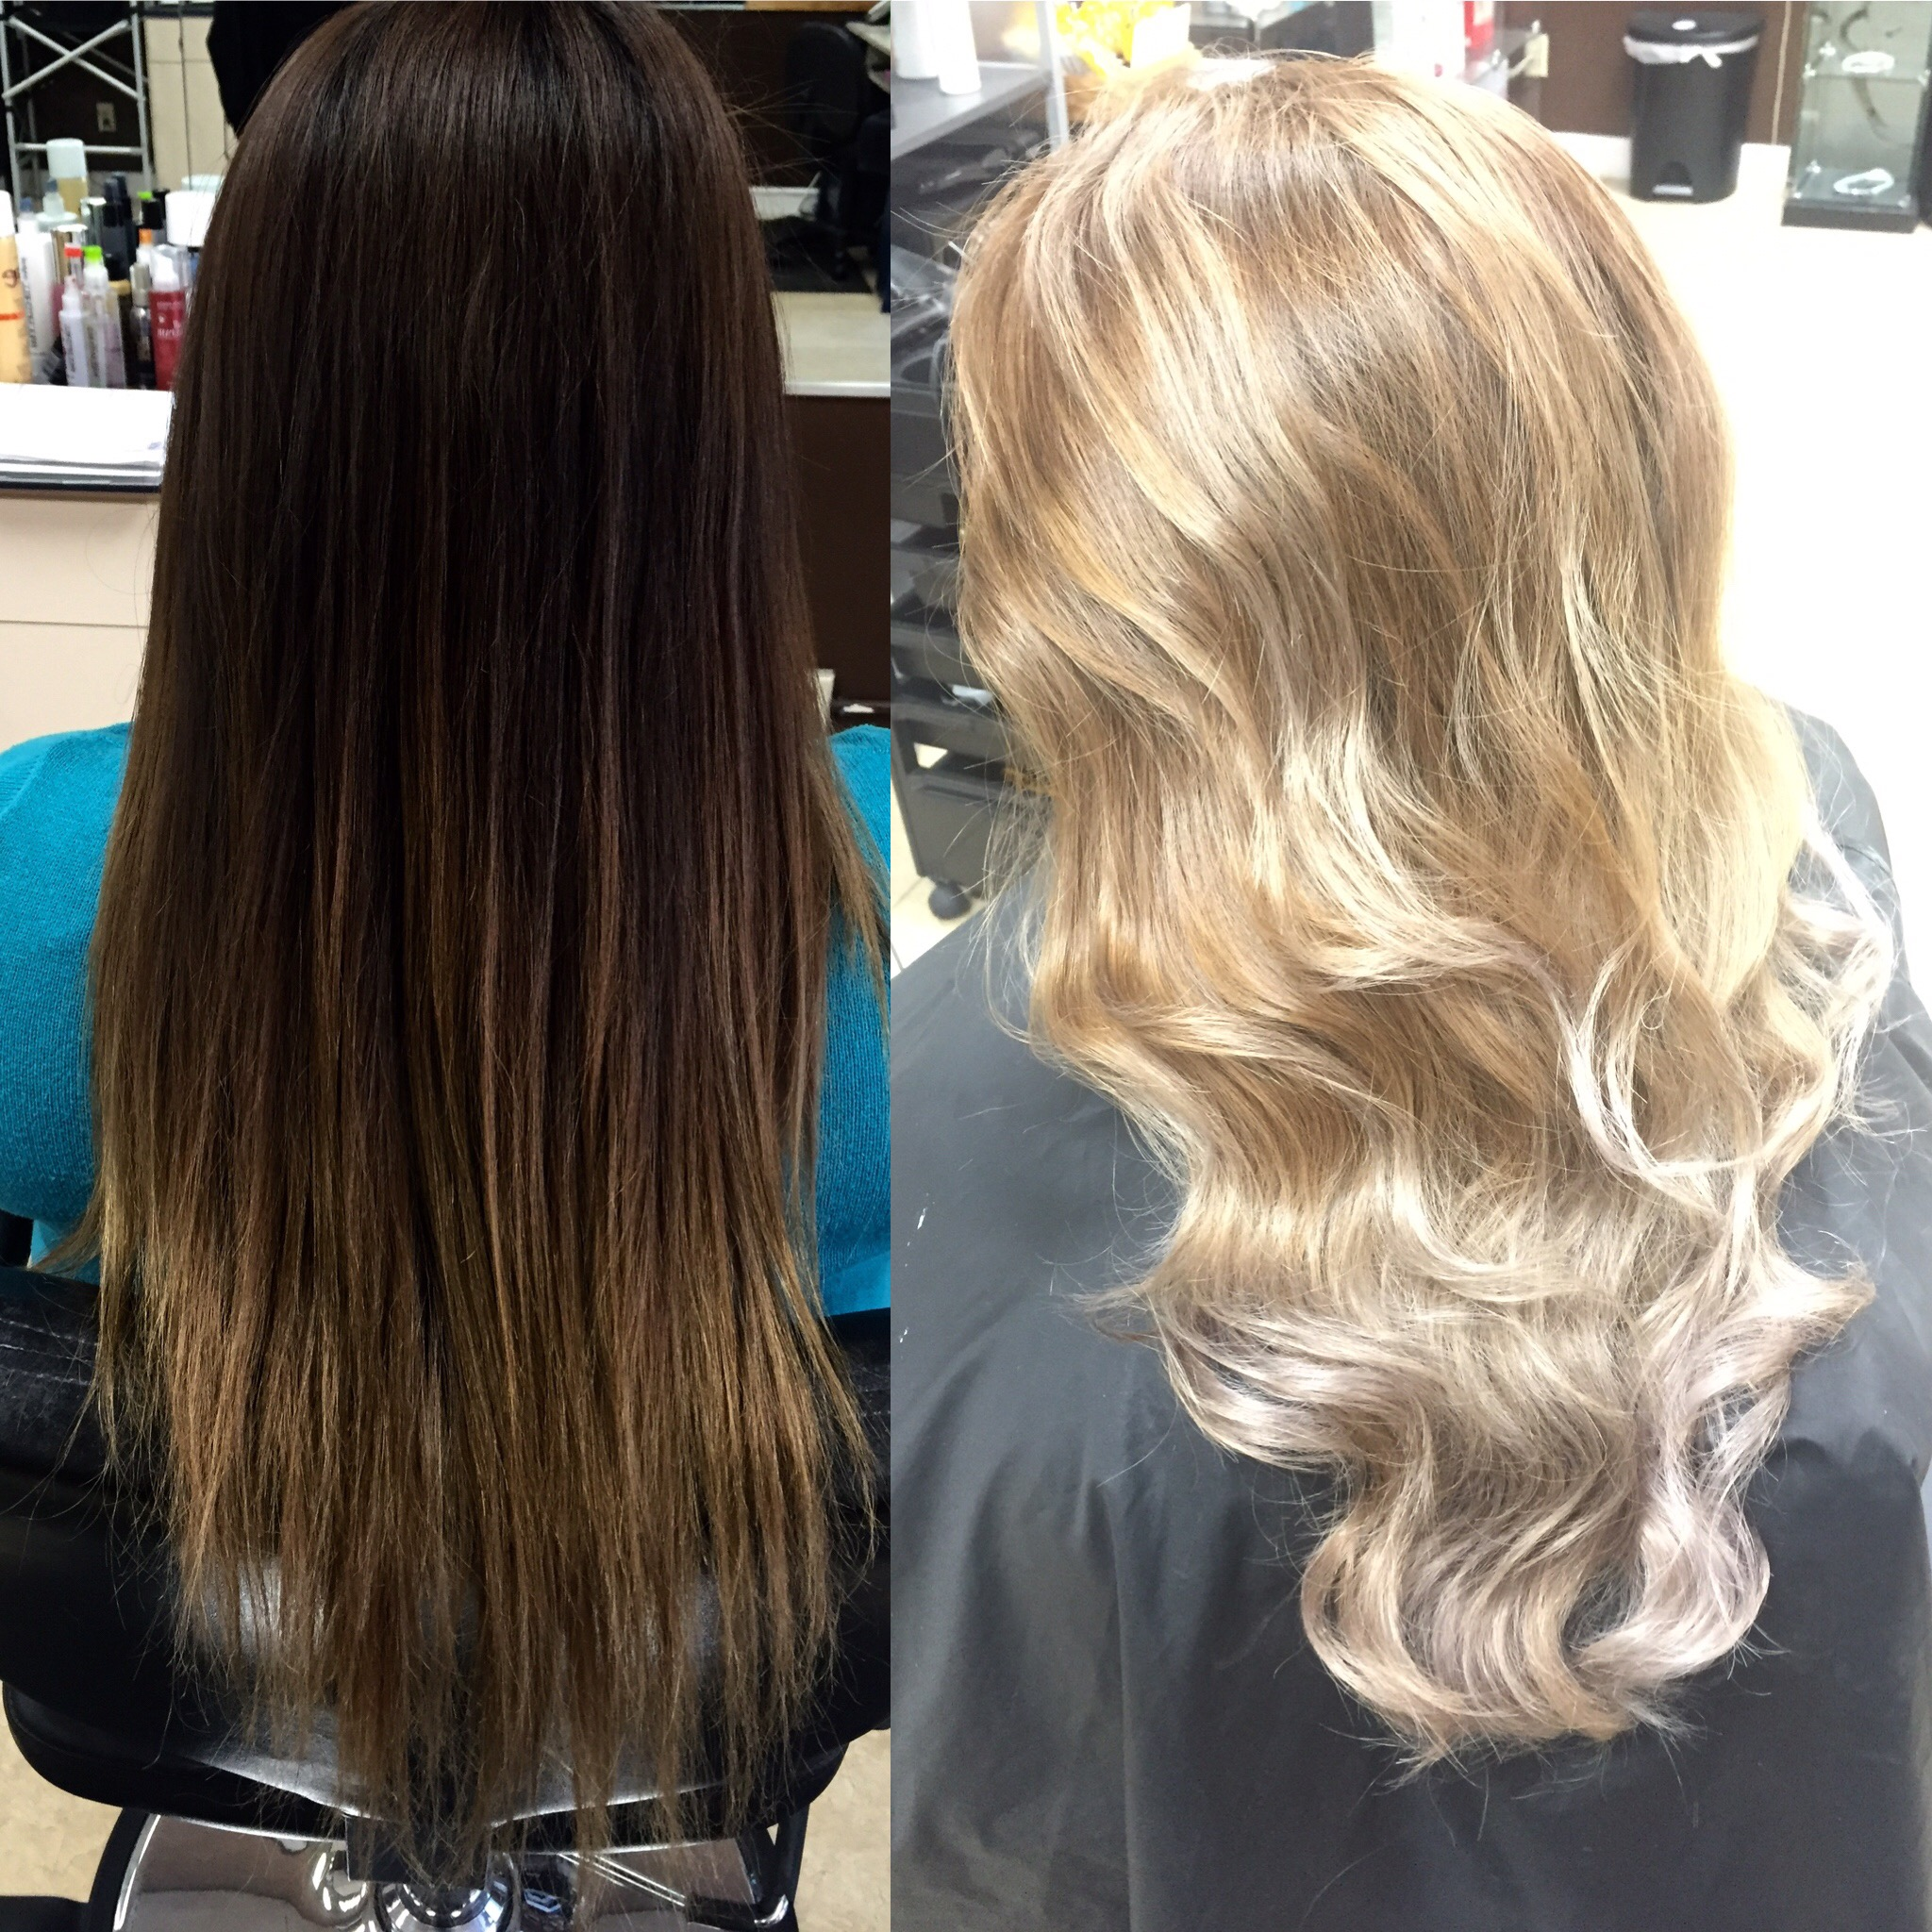 TRANSFORMATION: Faded Sombre To Sunny Blonde